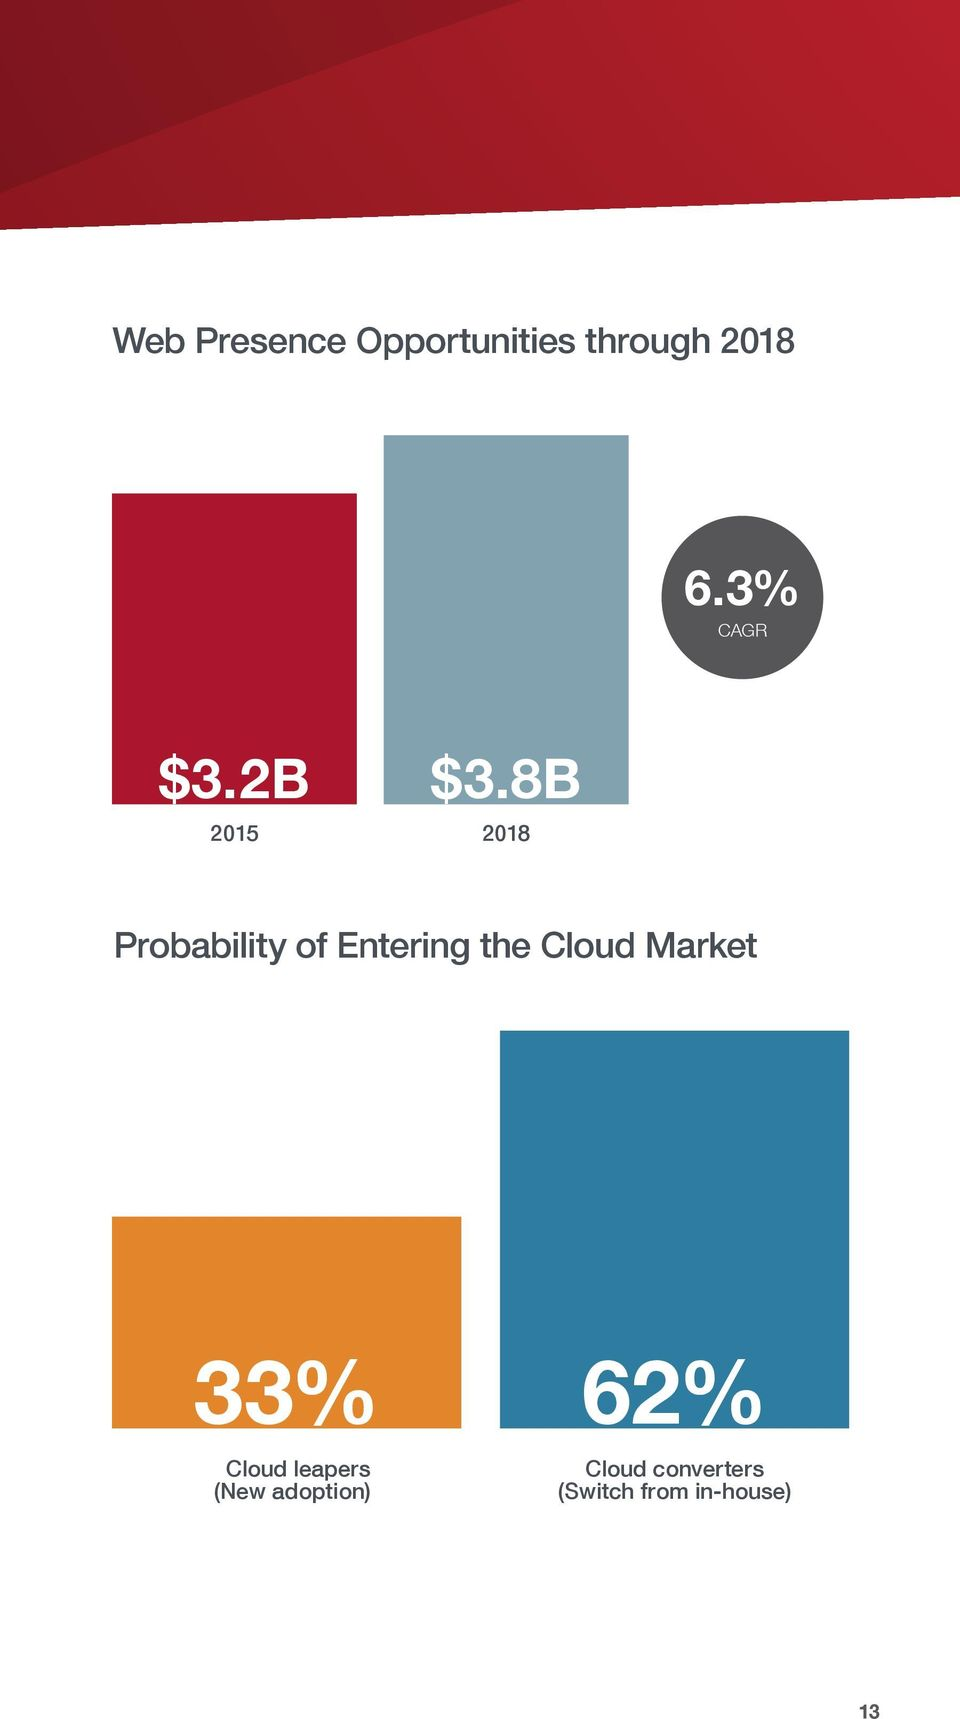 8B 2015 2018 Probability of Entering the Cloud